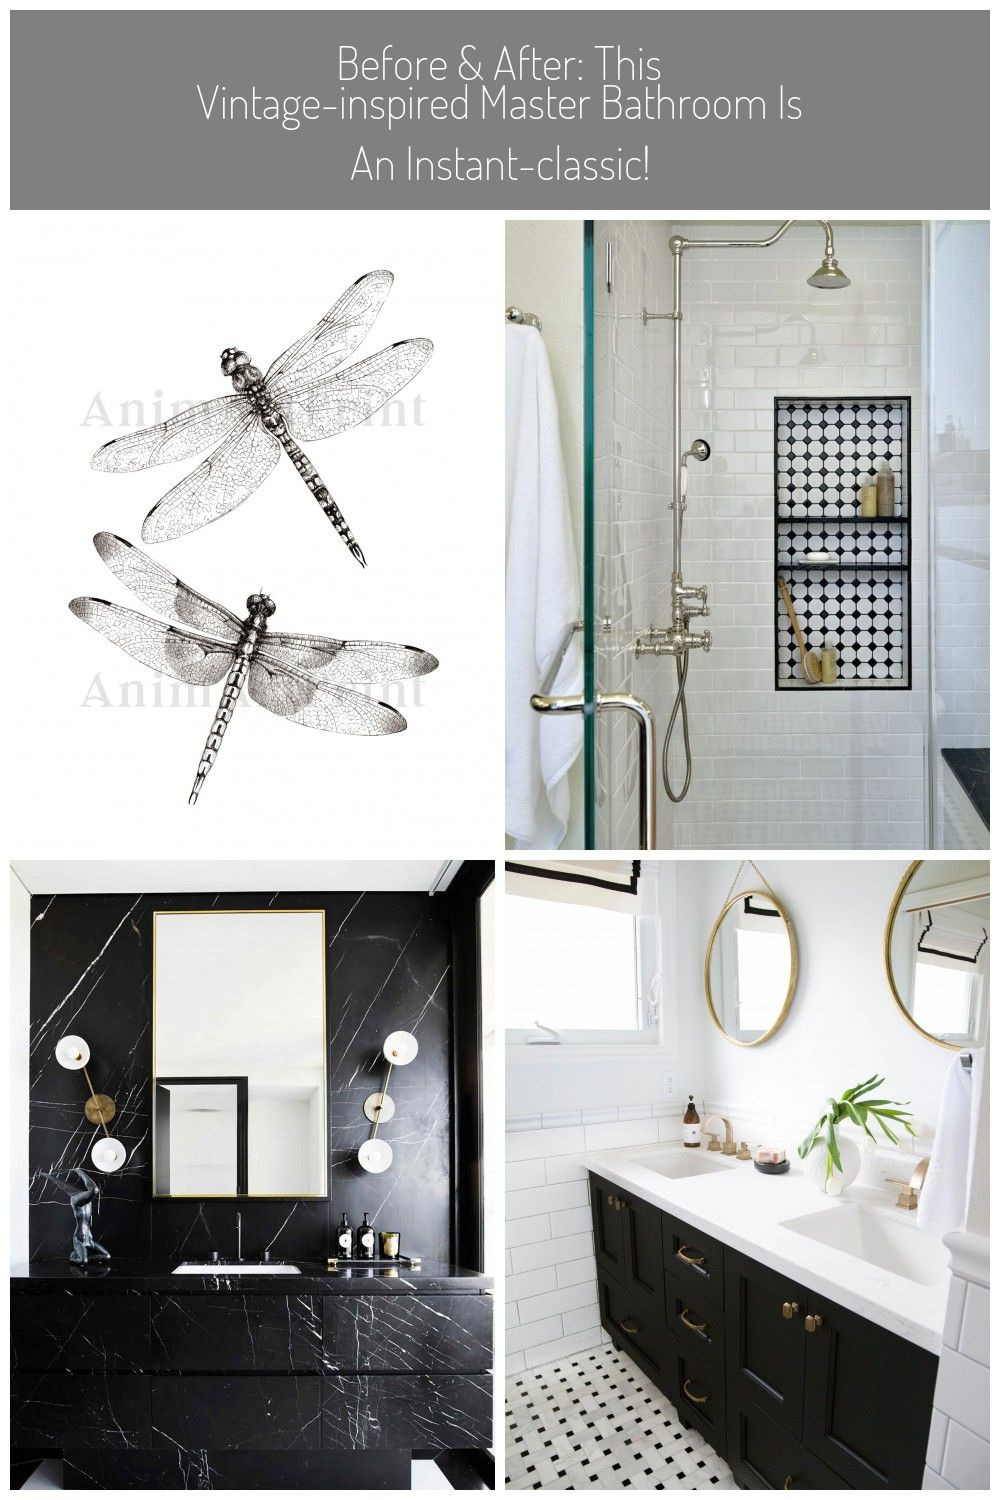 Dragonfly Bathroom Decor Lovely before after This Vintage Inspired Master Bathroom is An